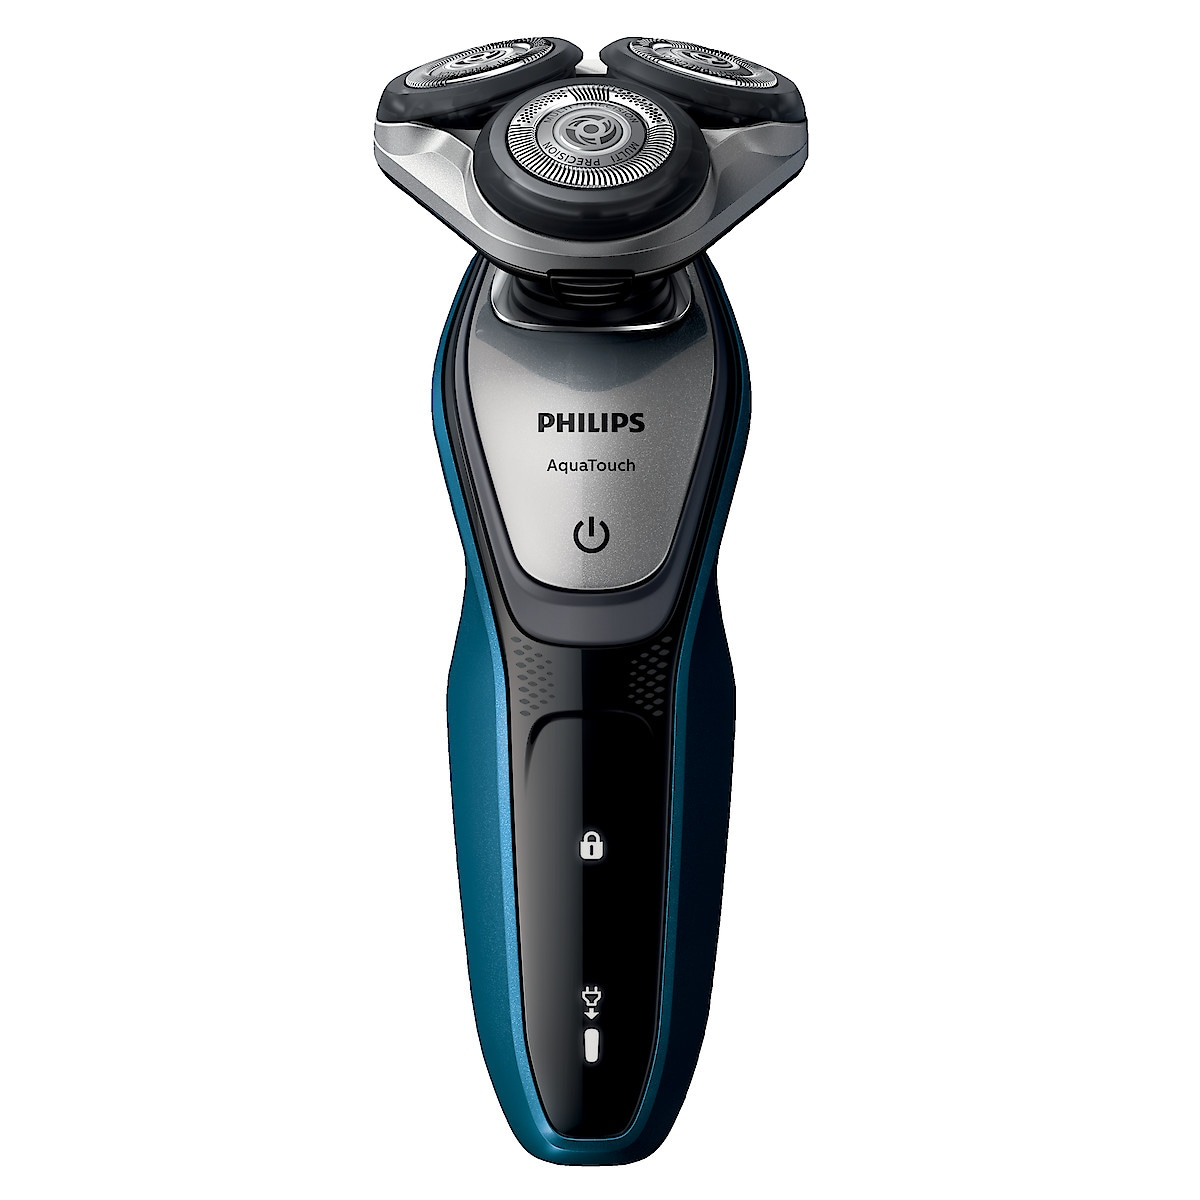 Philips AquaTouch S5420/06 barbermaskin